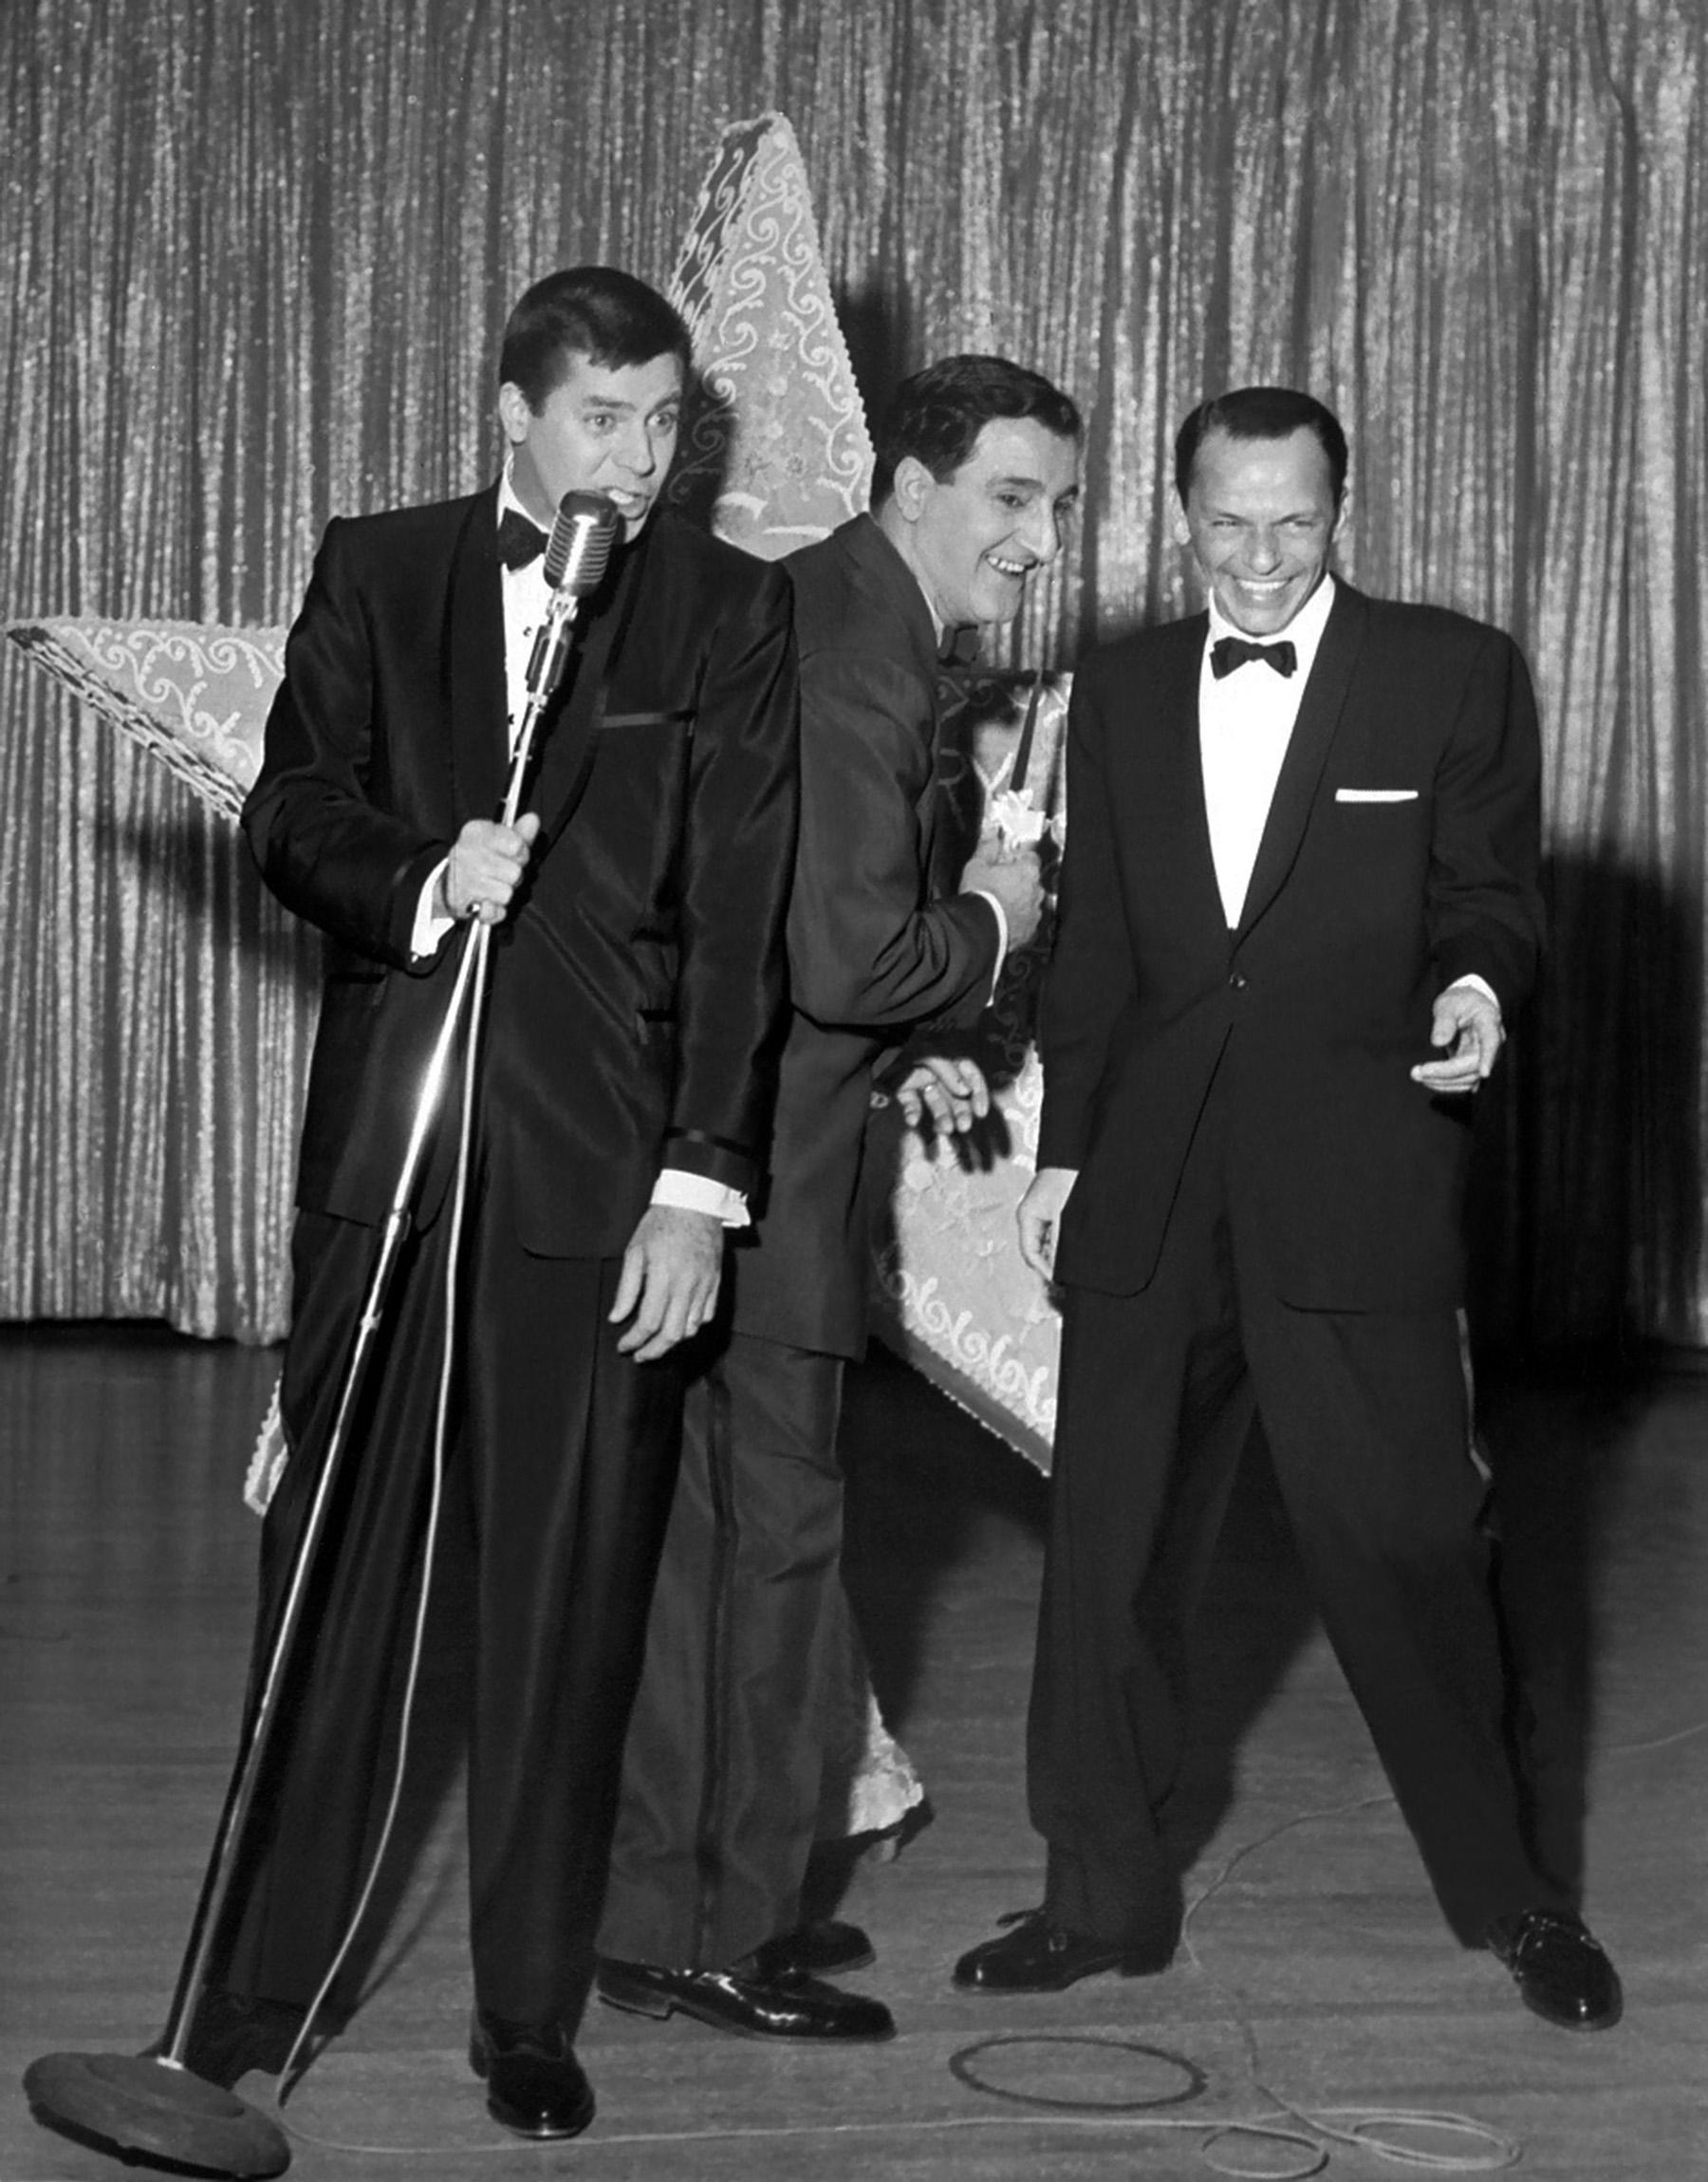 12/15/1956  Sands, 4th anniversary from left, Jerry Lewis, Danny Thomas,  and Frank Sinatra                   Came from job #6243 from Sands 4th anniversary 12/15/1956. CREDIT: Las Vegas News Bureau